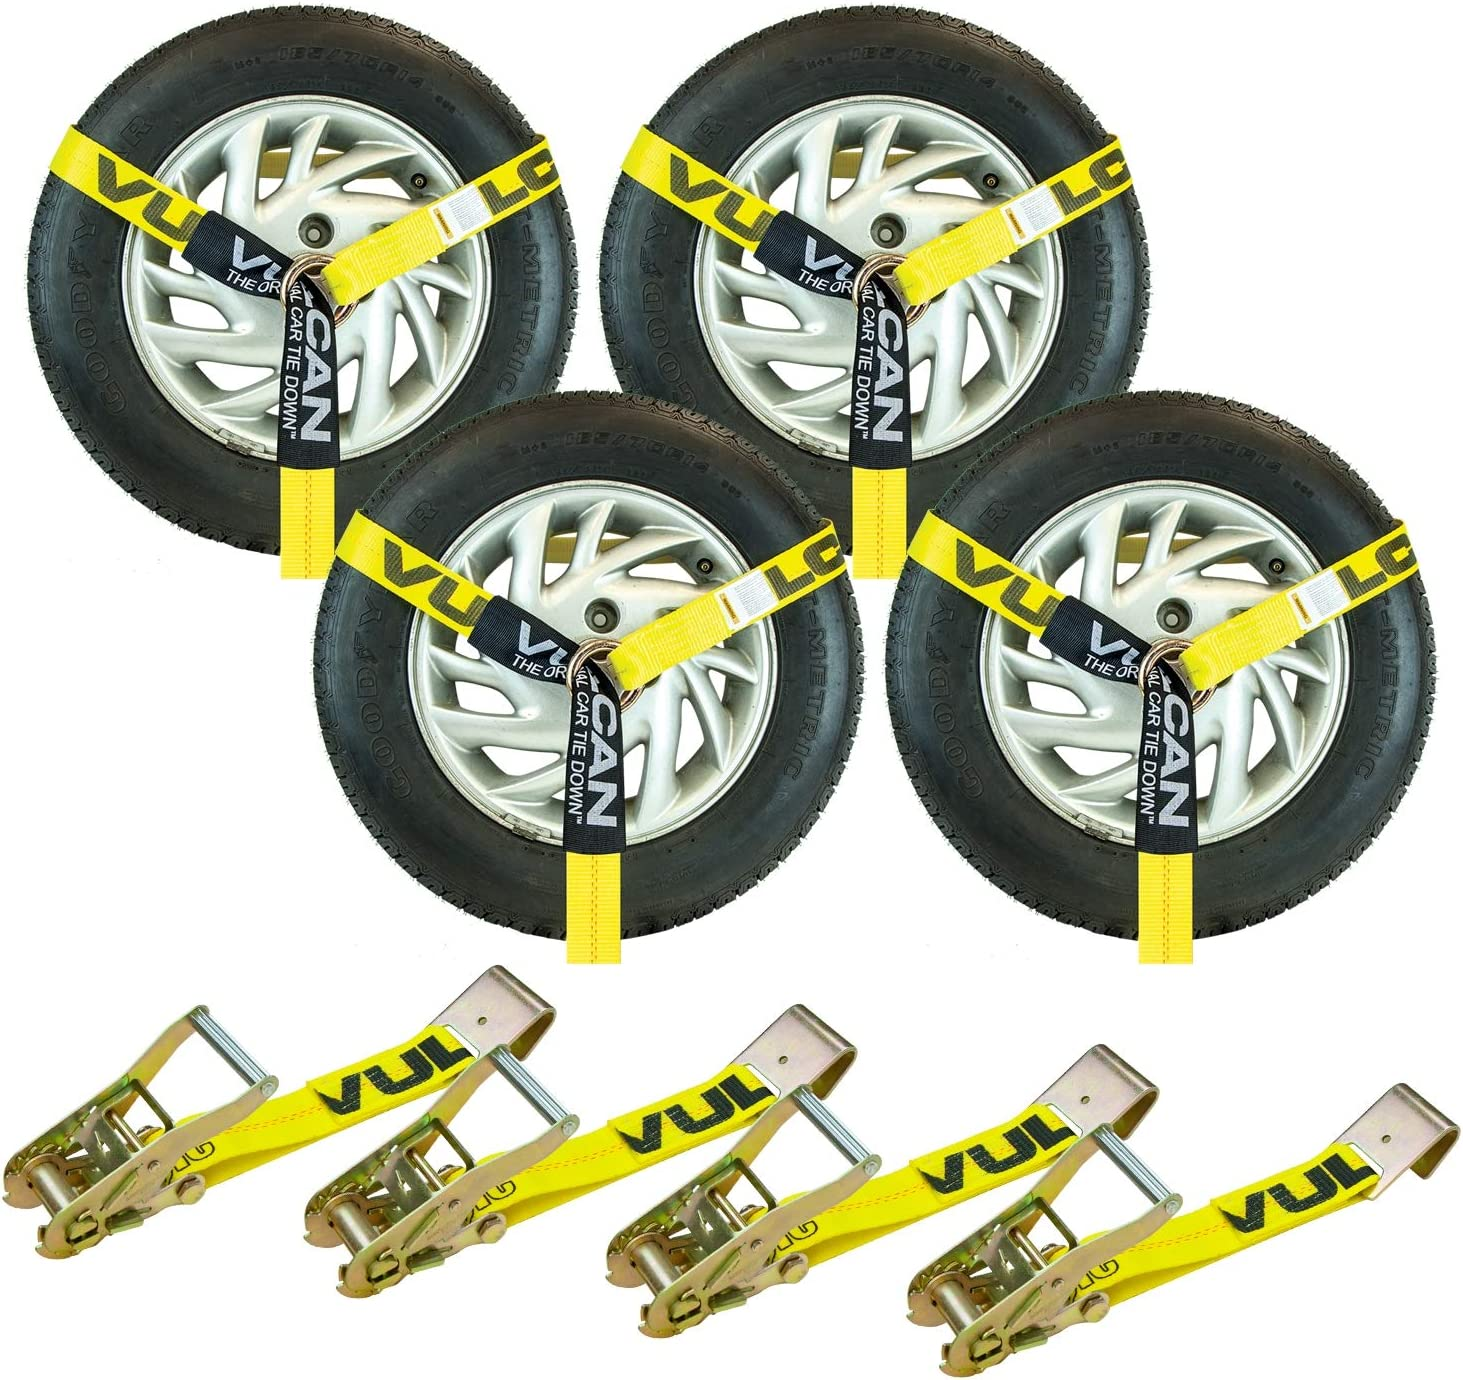 Mytee Products 4 Pack 2 x10 Lasso Ratchet Strap Flat Hook Wheel Net Auto Tow Towing Tie Down